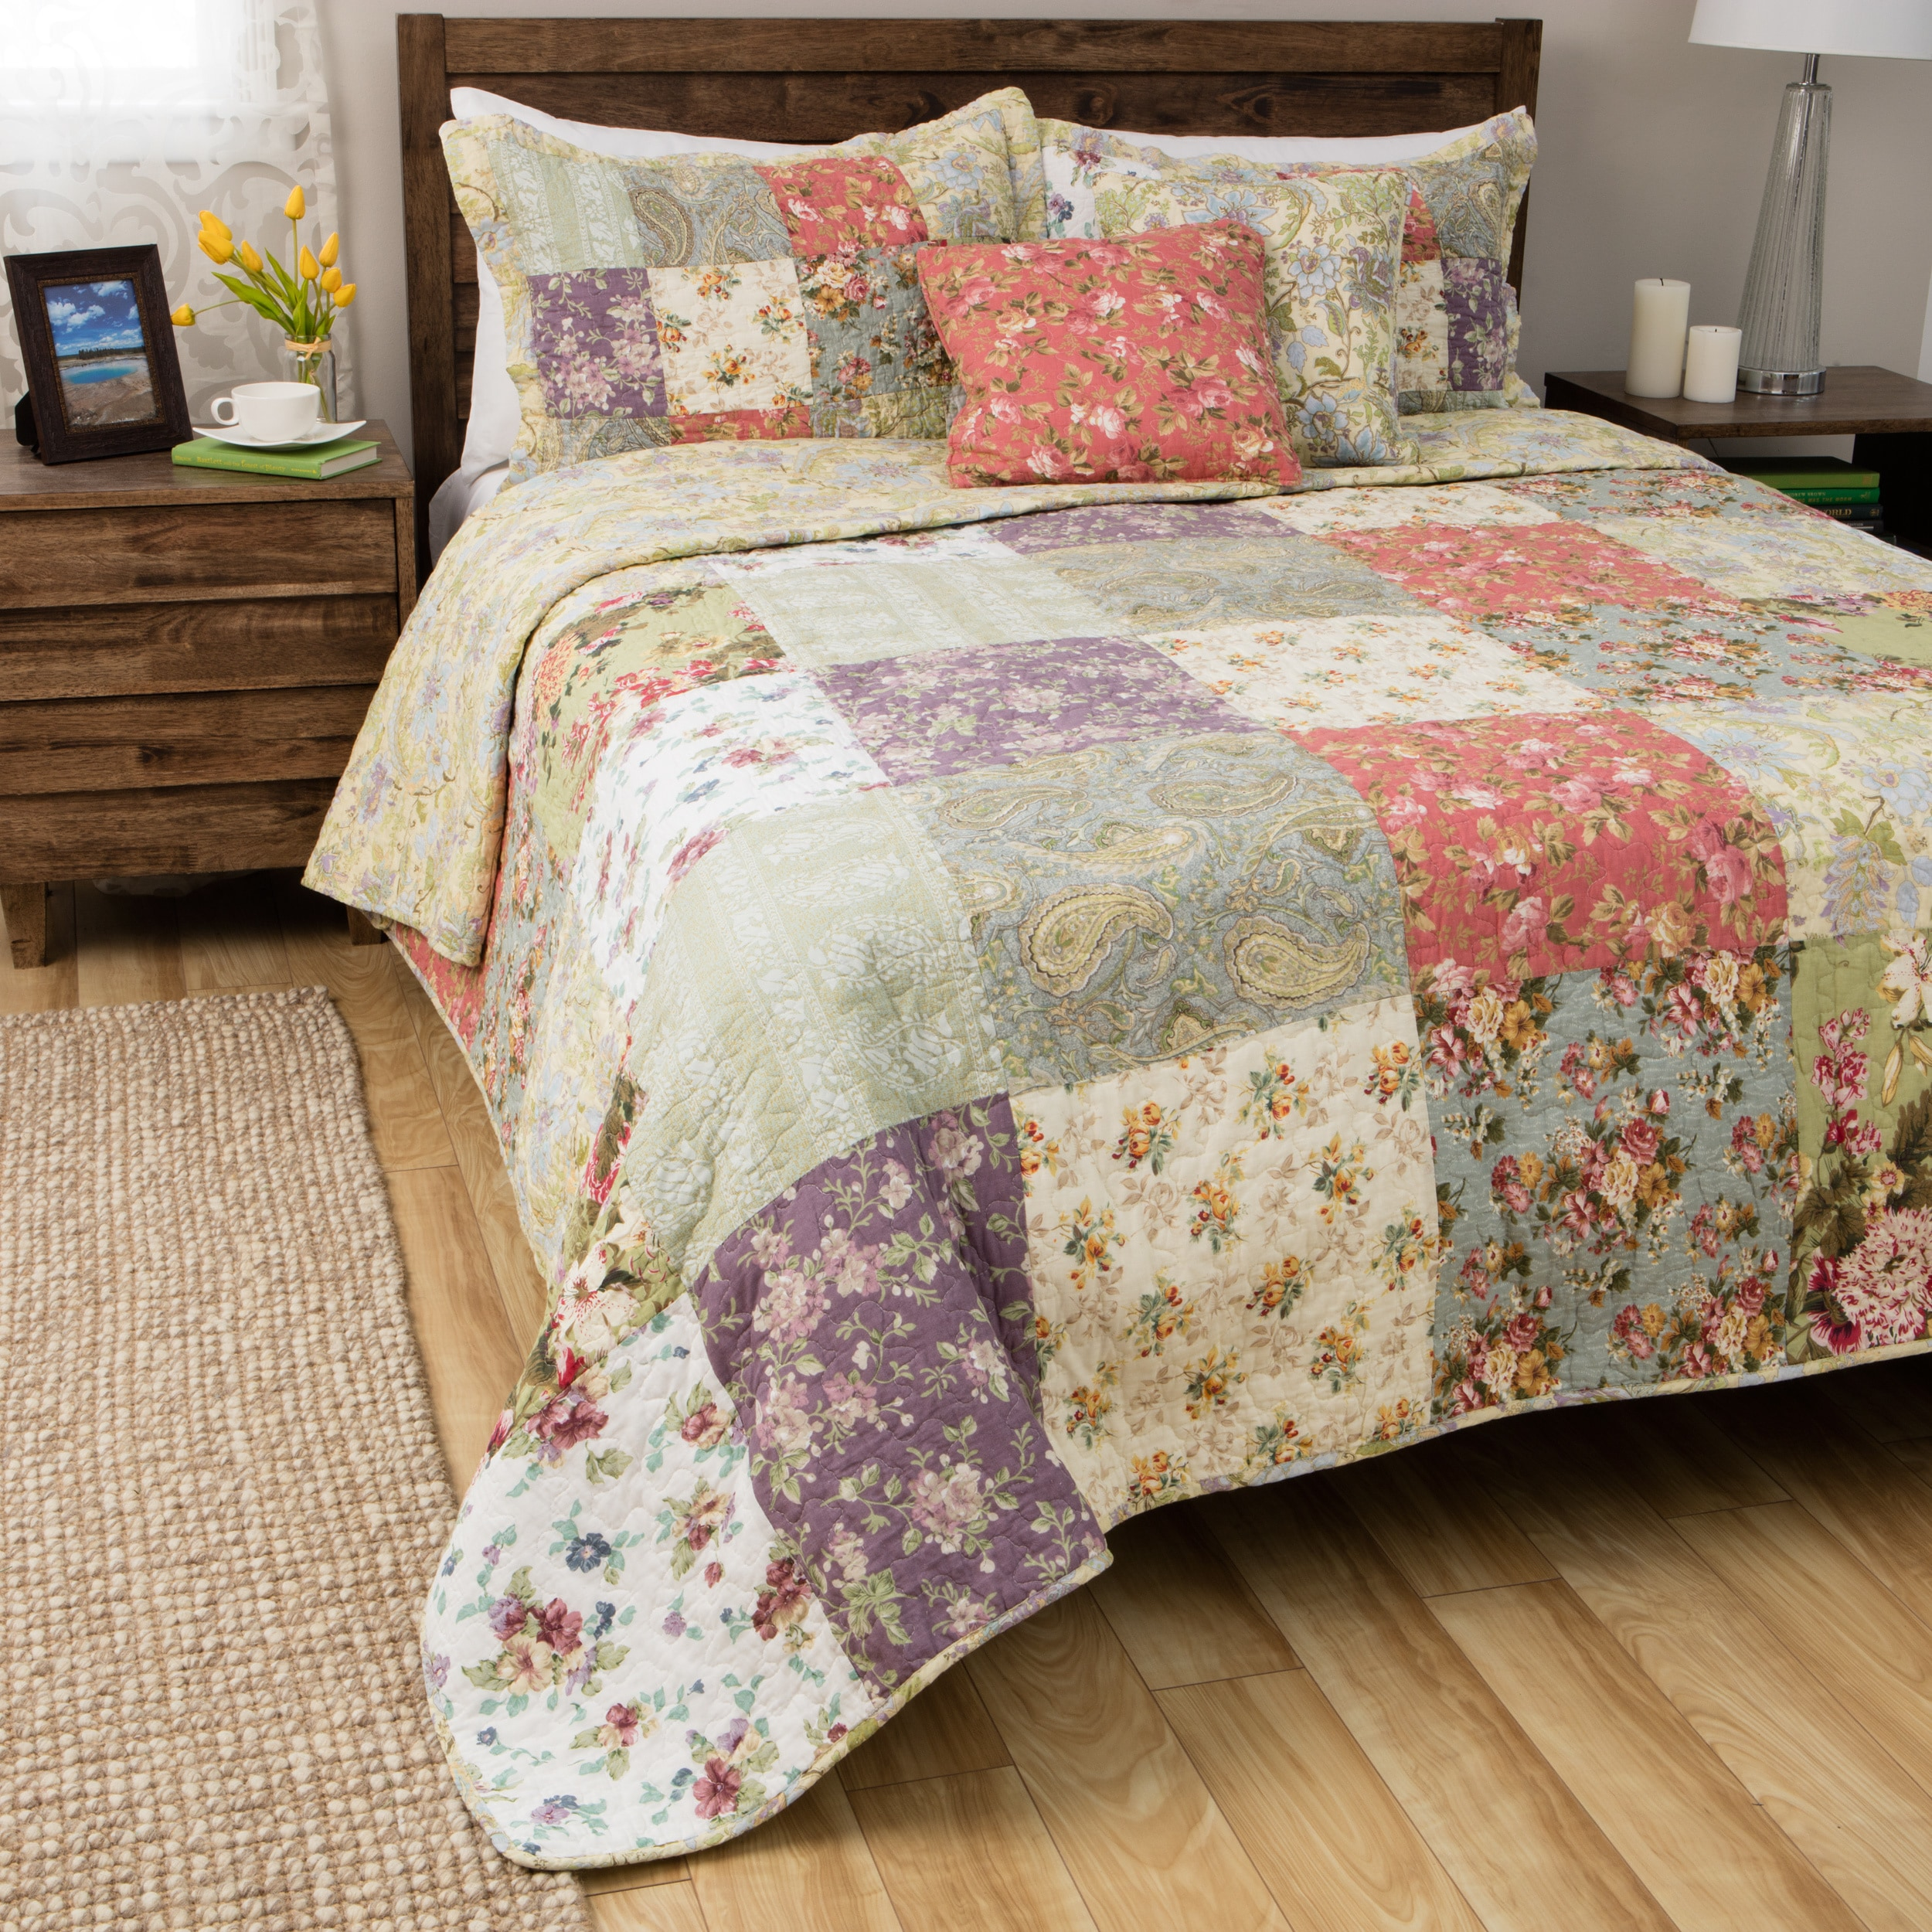 Greenland Home Fashions Blooming Prairie 5-piece Cotton Quilt Set - On Sale  - Overstock - 4348150